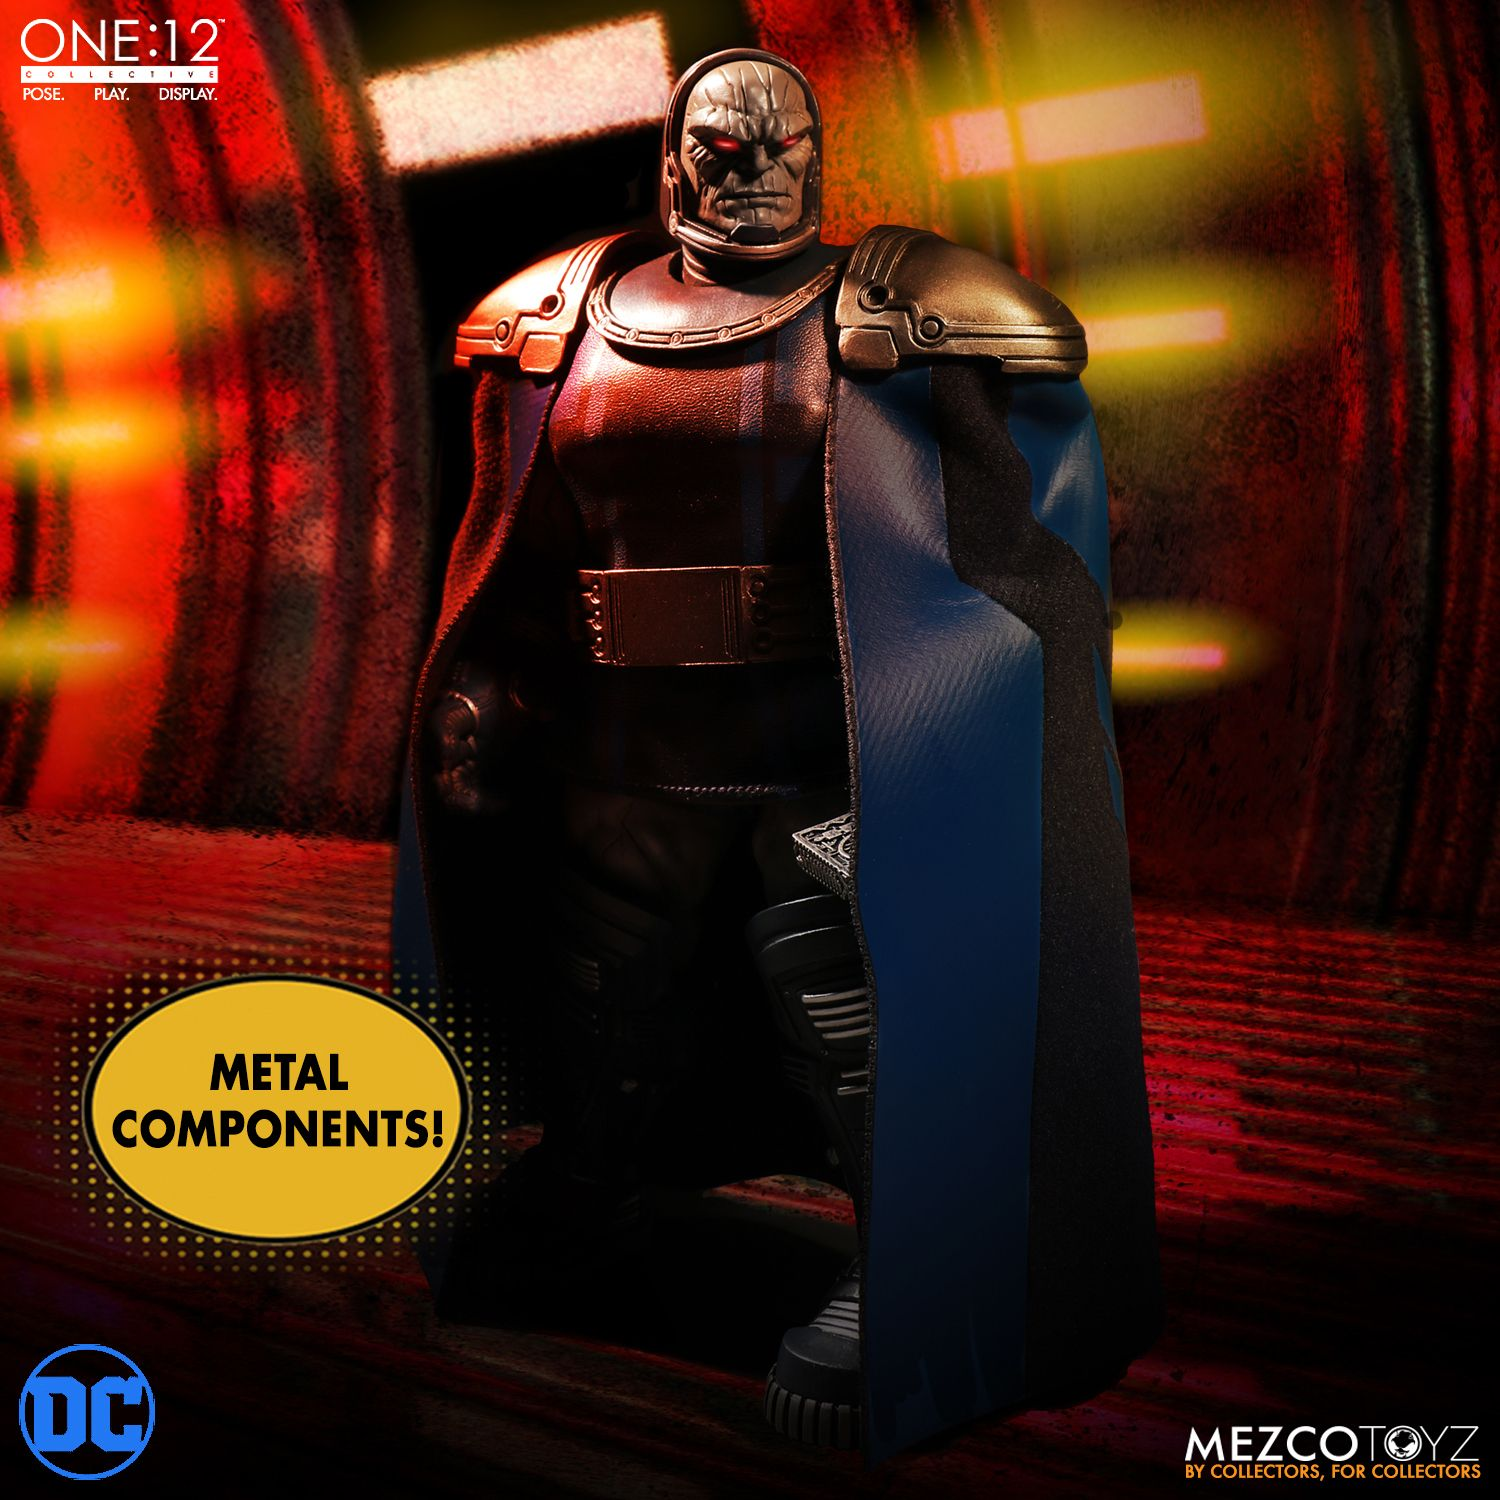 Mezco Toyz One:12 Collective DC Comics Darkseid 1/12 Scale